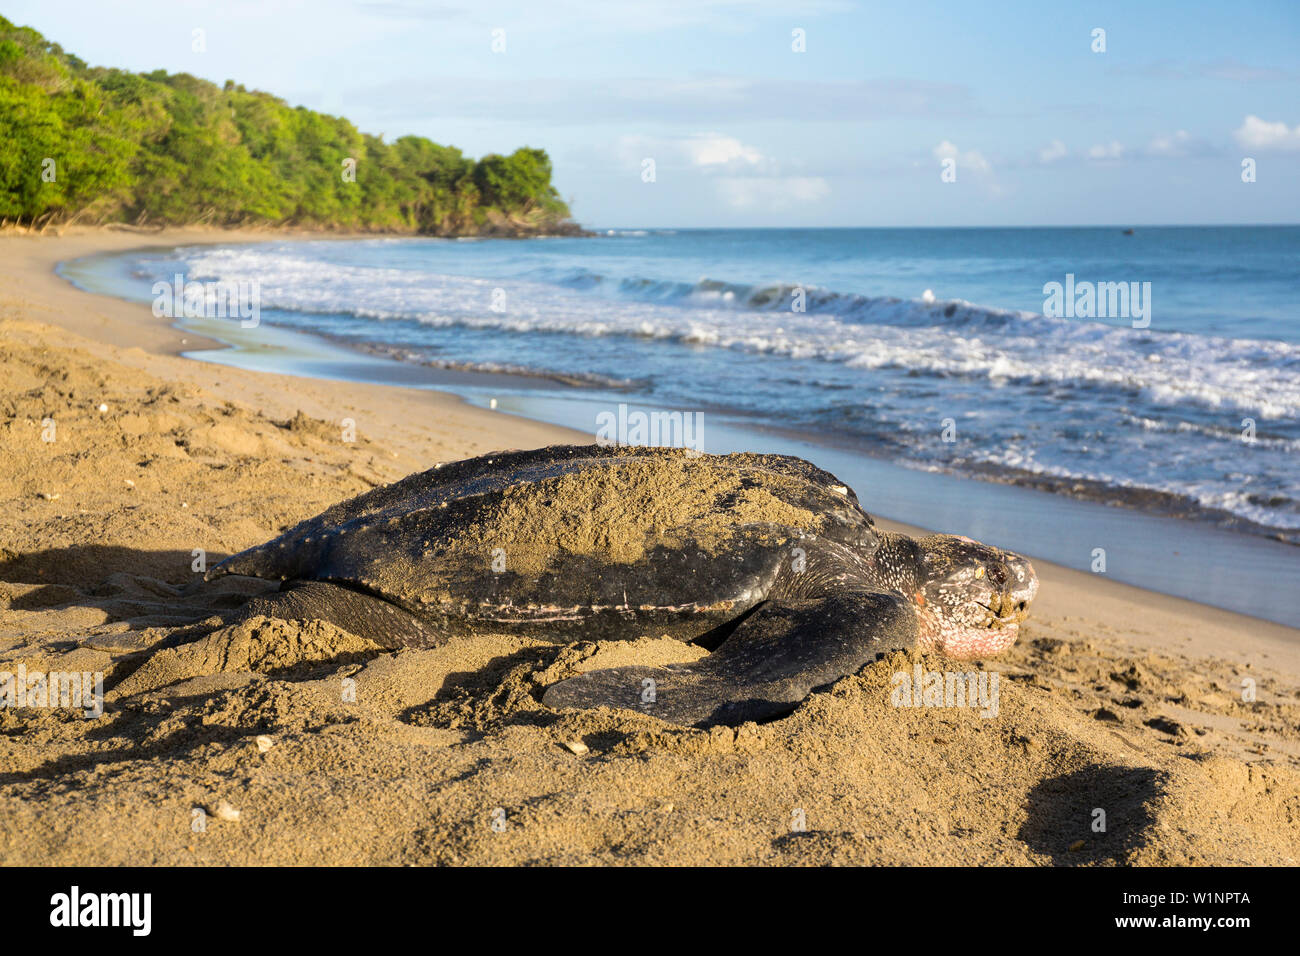 Leatherback Turtle On The Beach Dermochelys Coriacea